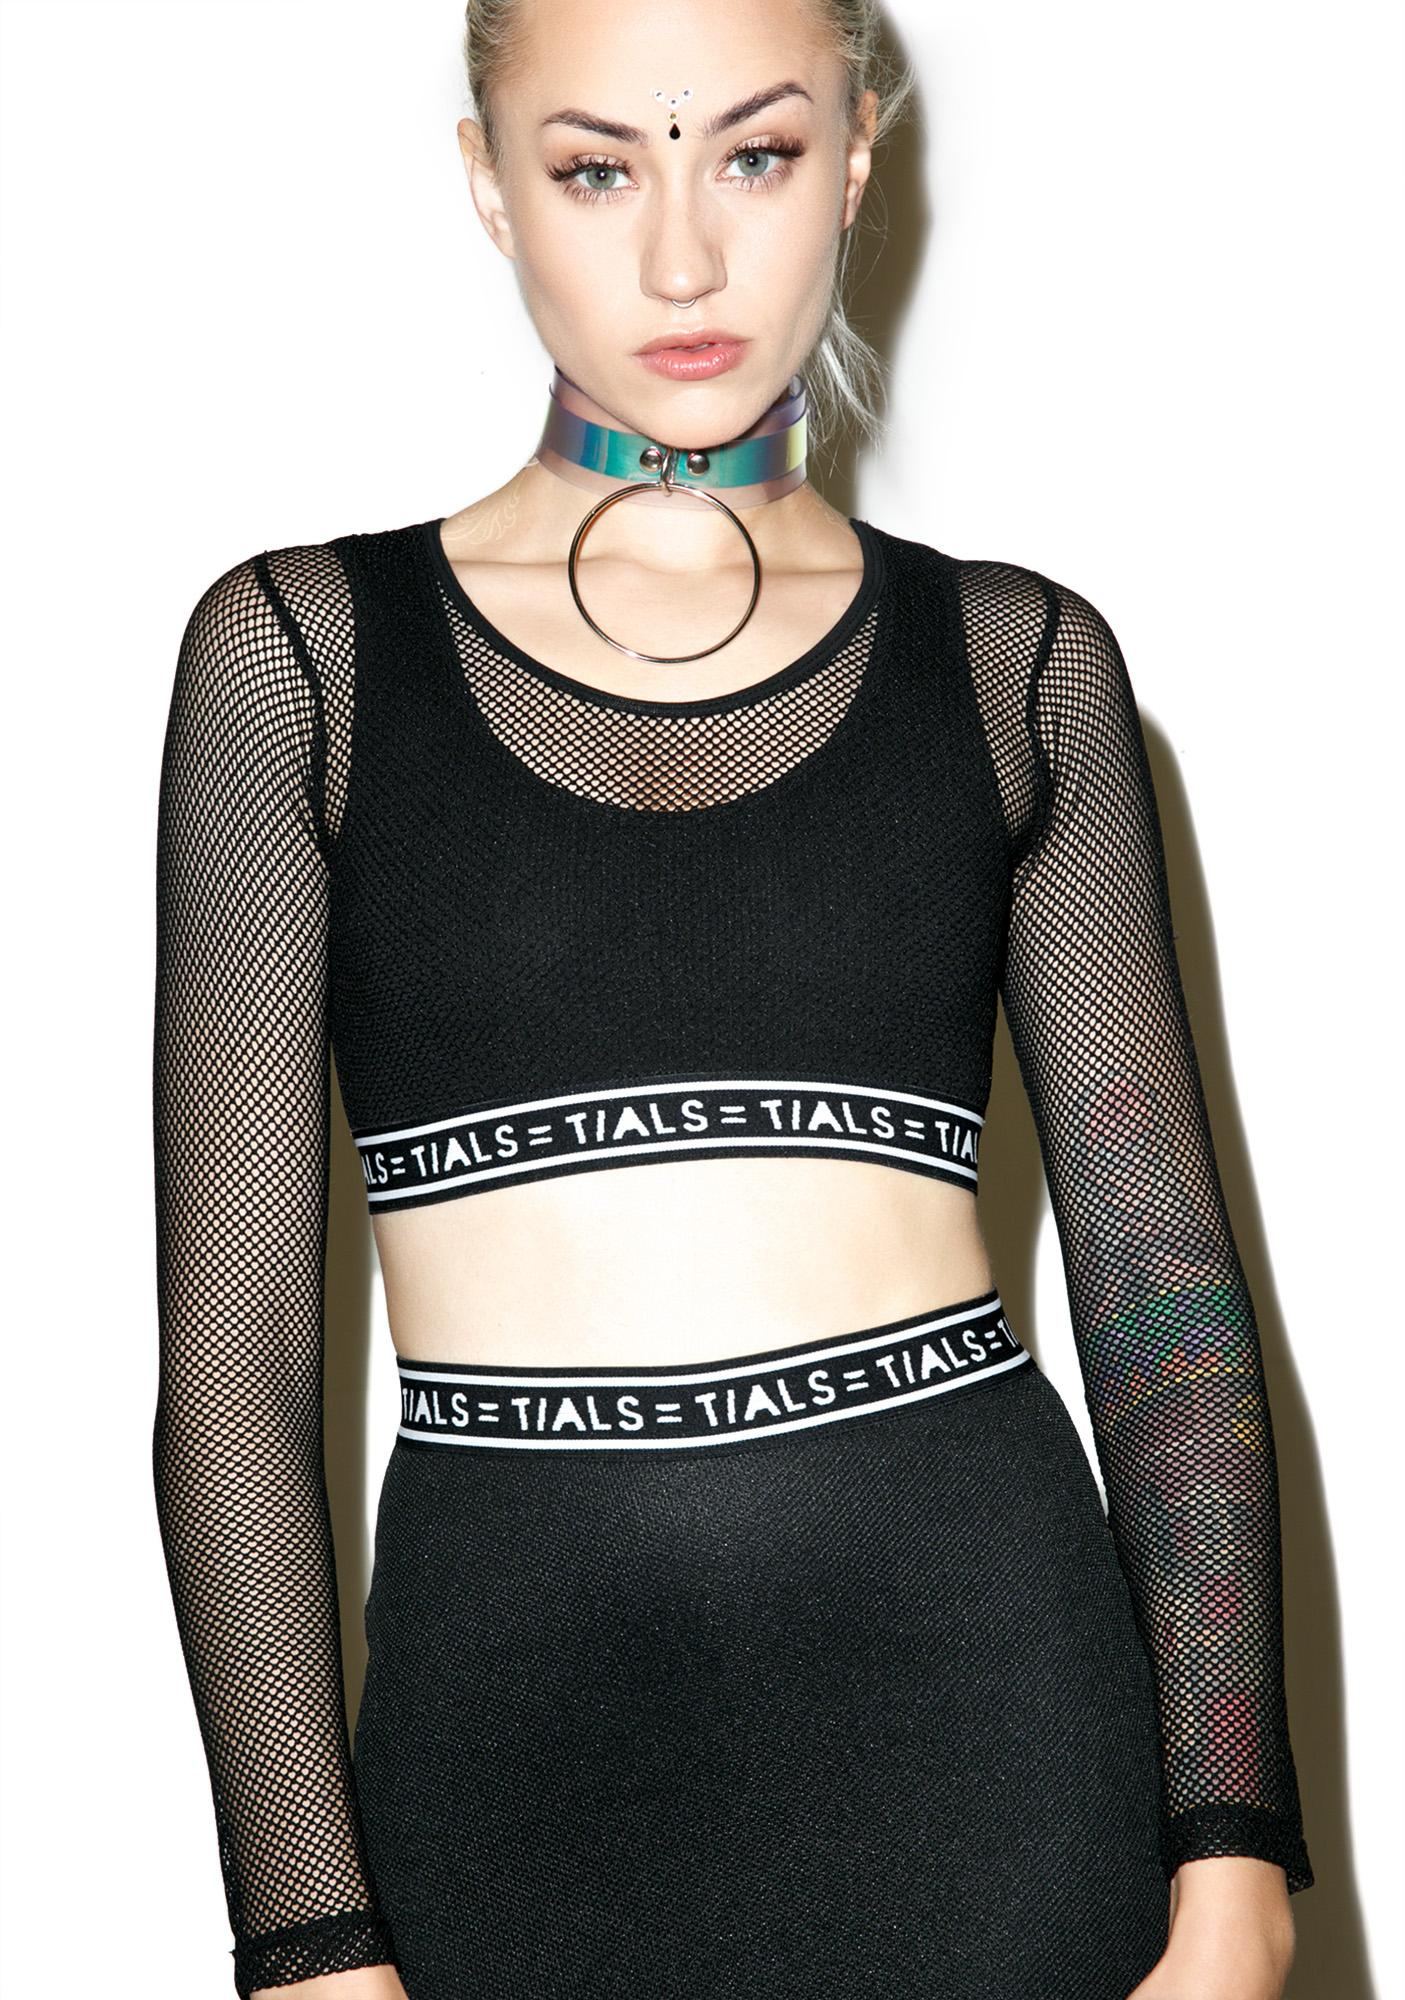 ade953c6b5cb8 This Is A Love Song Sporty Mesh Crop Top